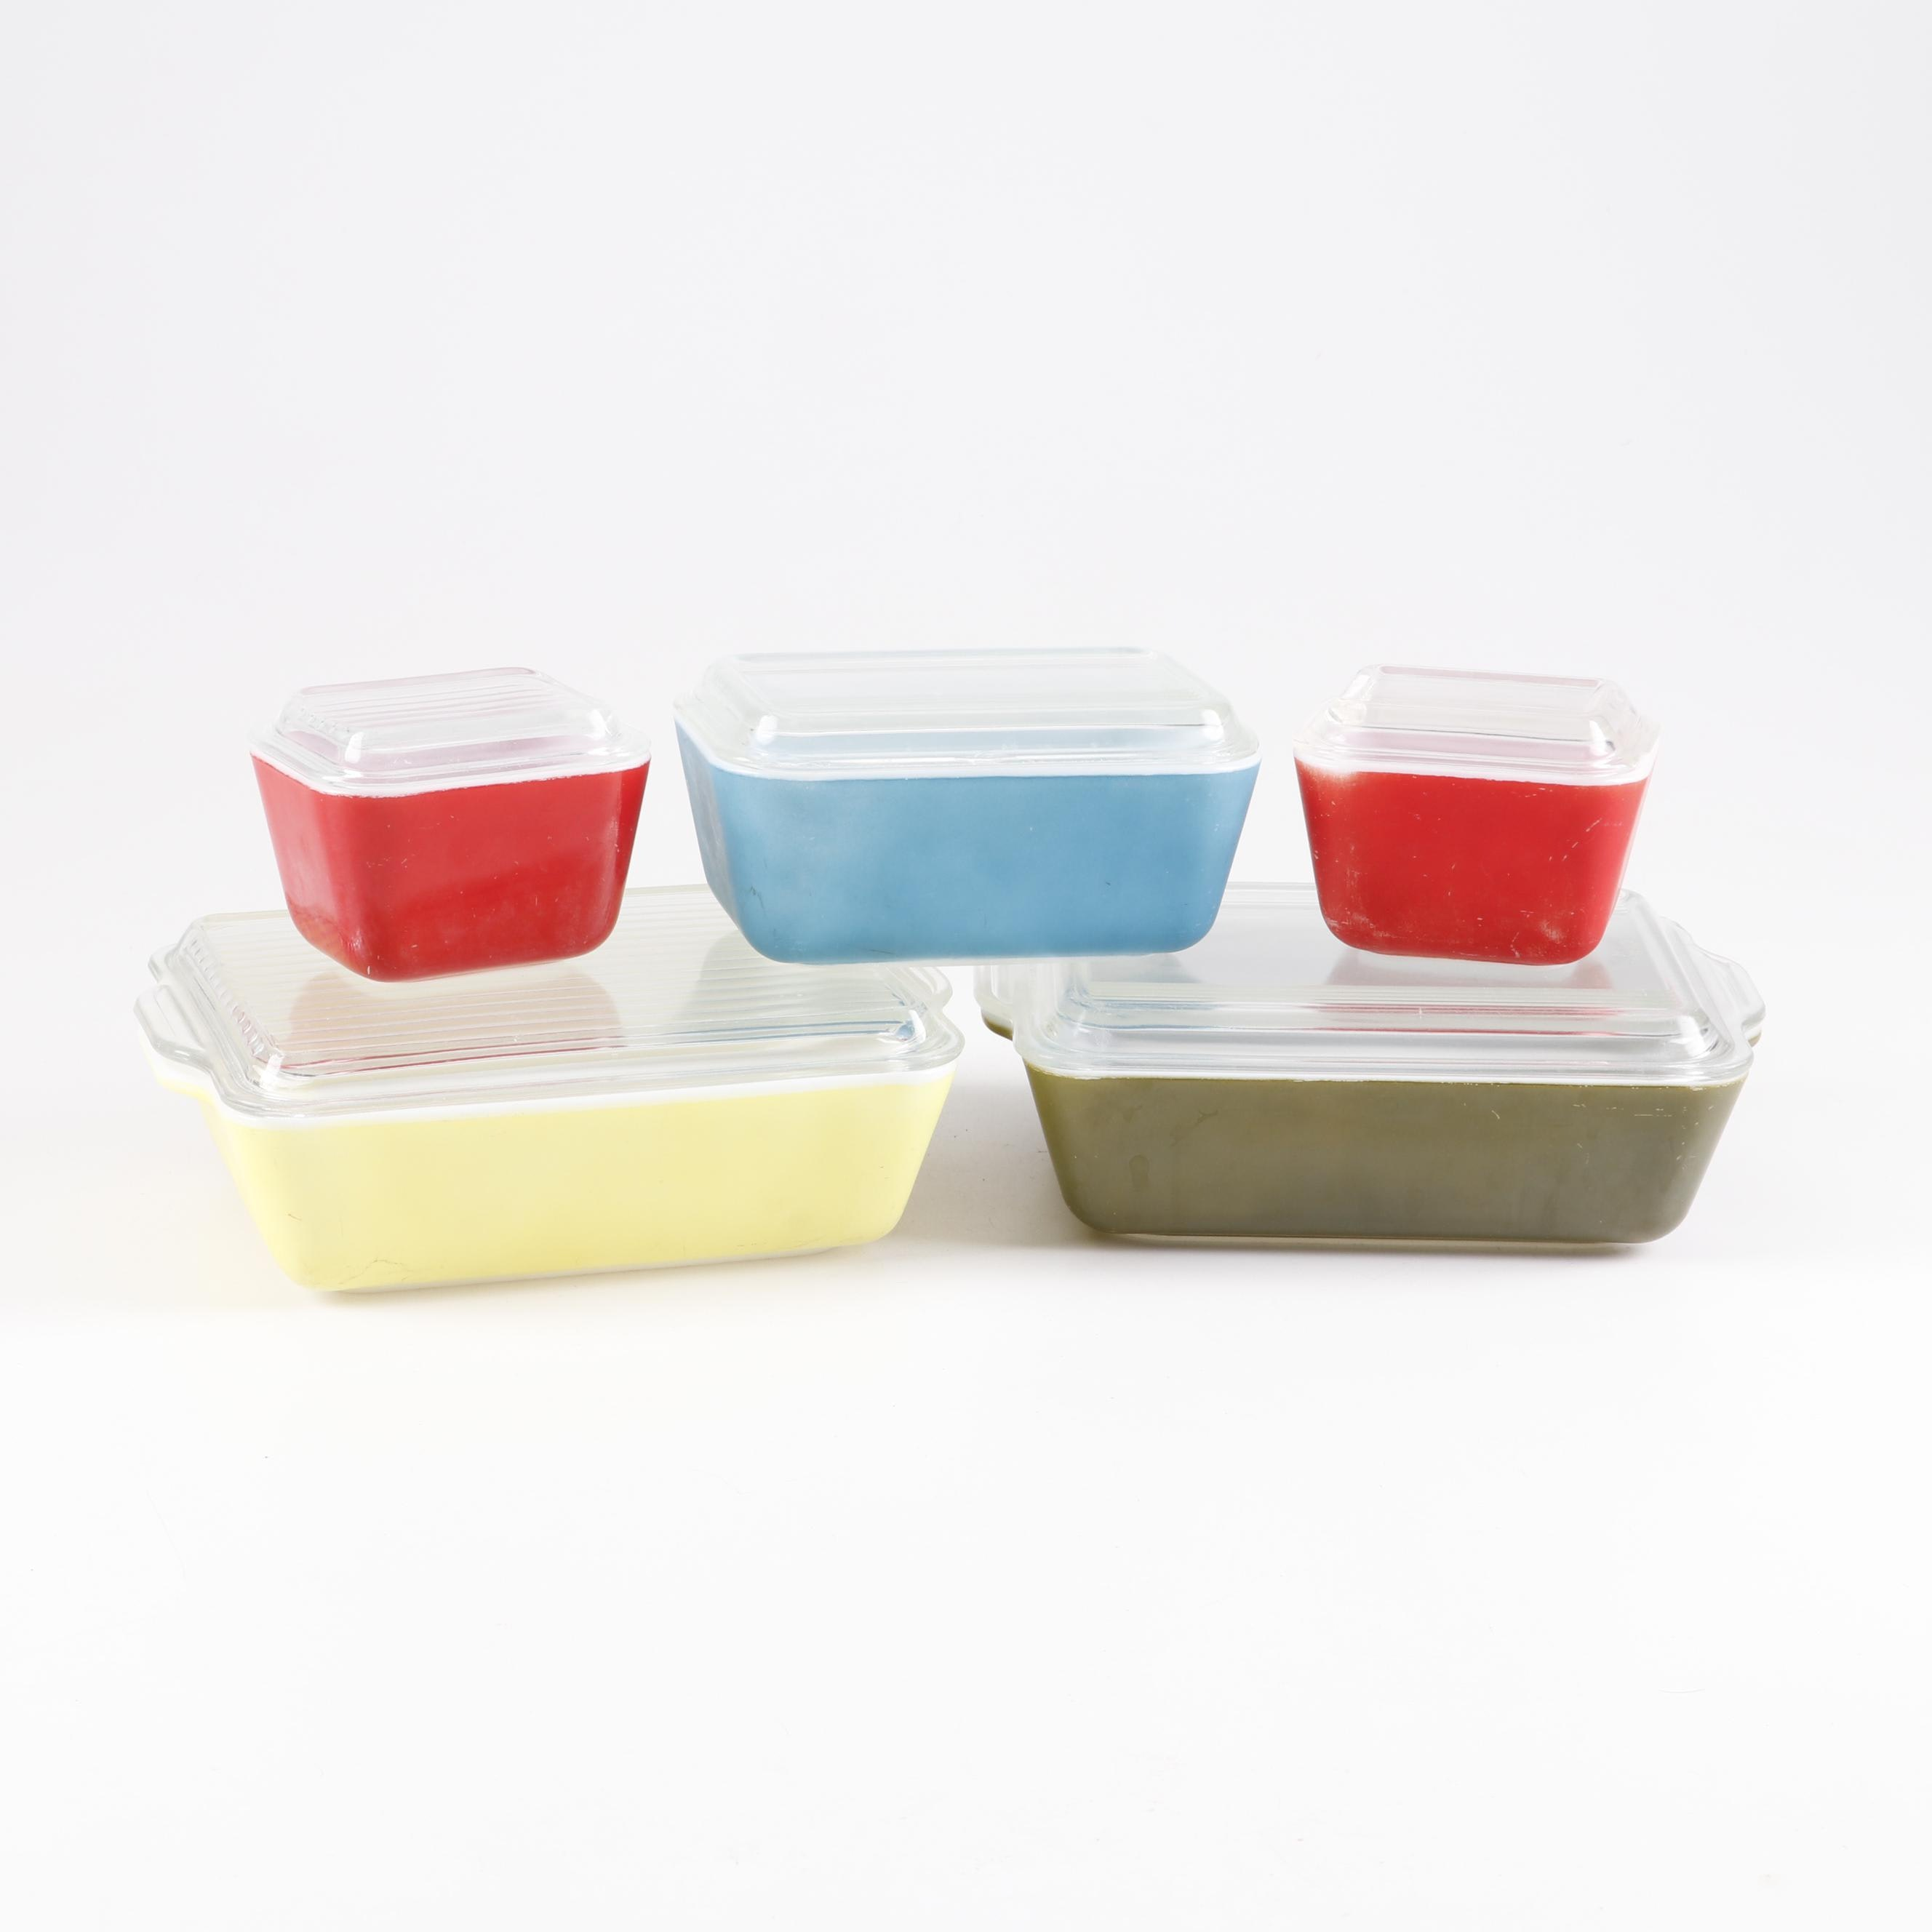 Pyrex Glass Bakeware and Refrigerator Boxes, Mid-Century